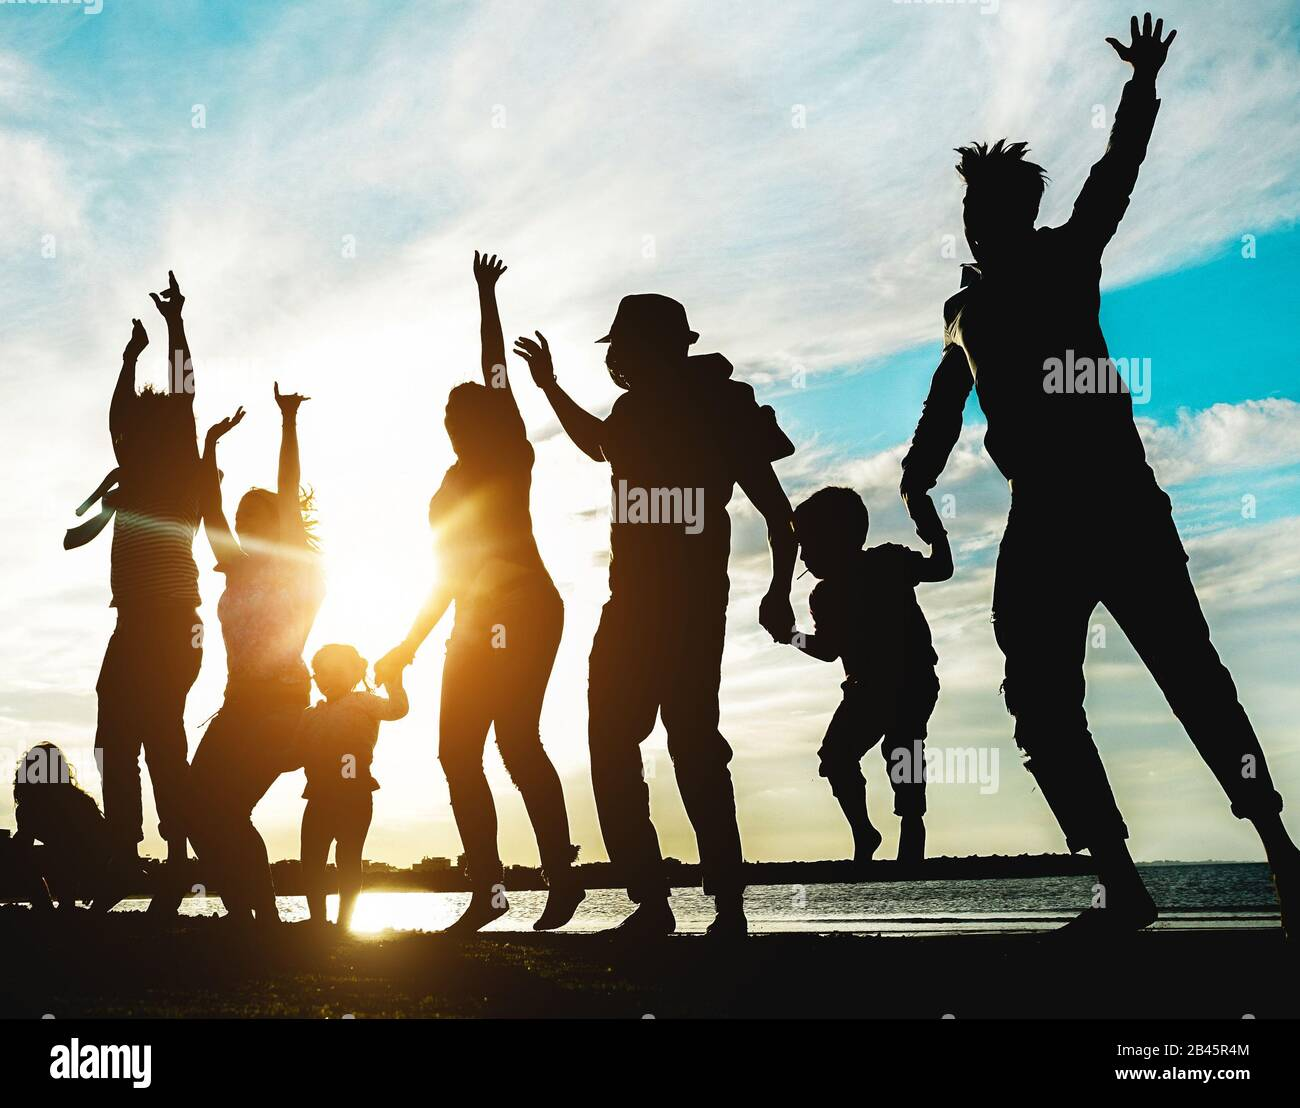 Silhouette of big family having fun on the beach at sunset - Father, mother, children and uncles enjoying time together - Focus on bodies - Love, rela Stock Photo